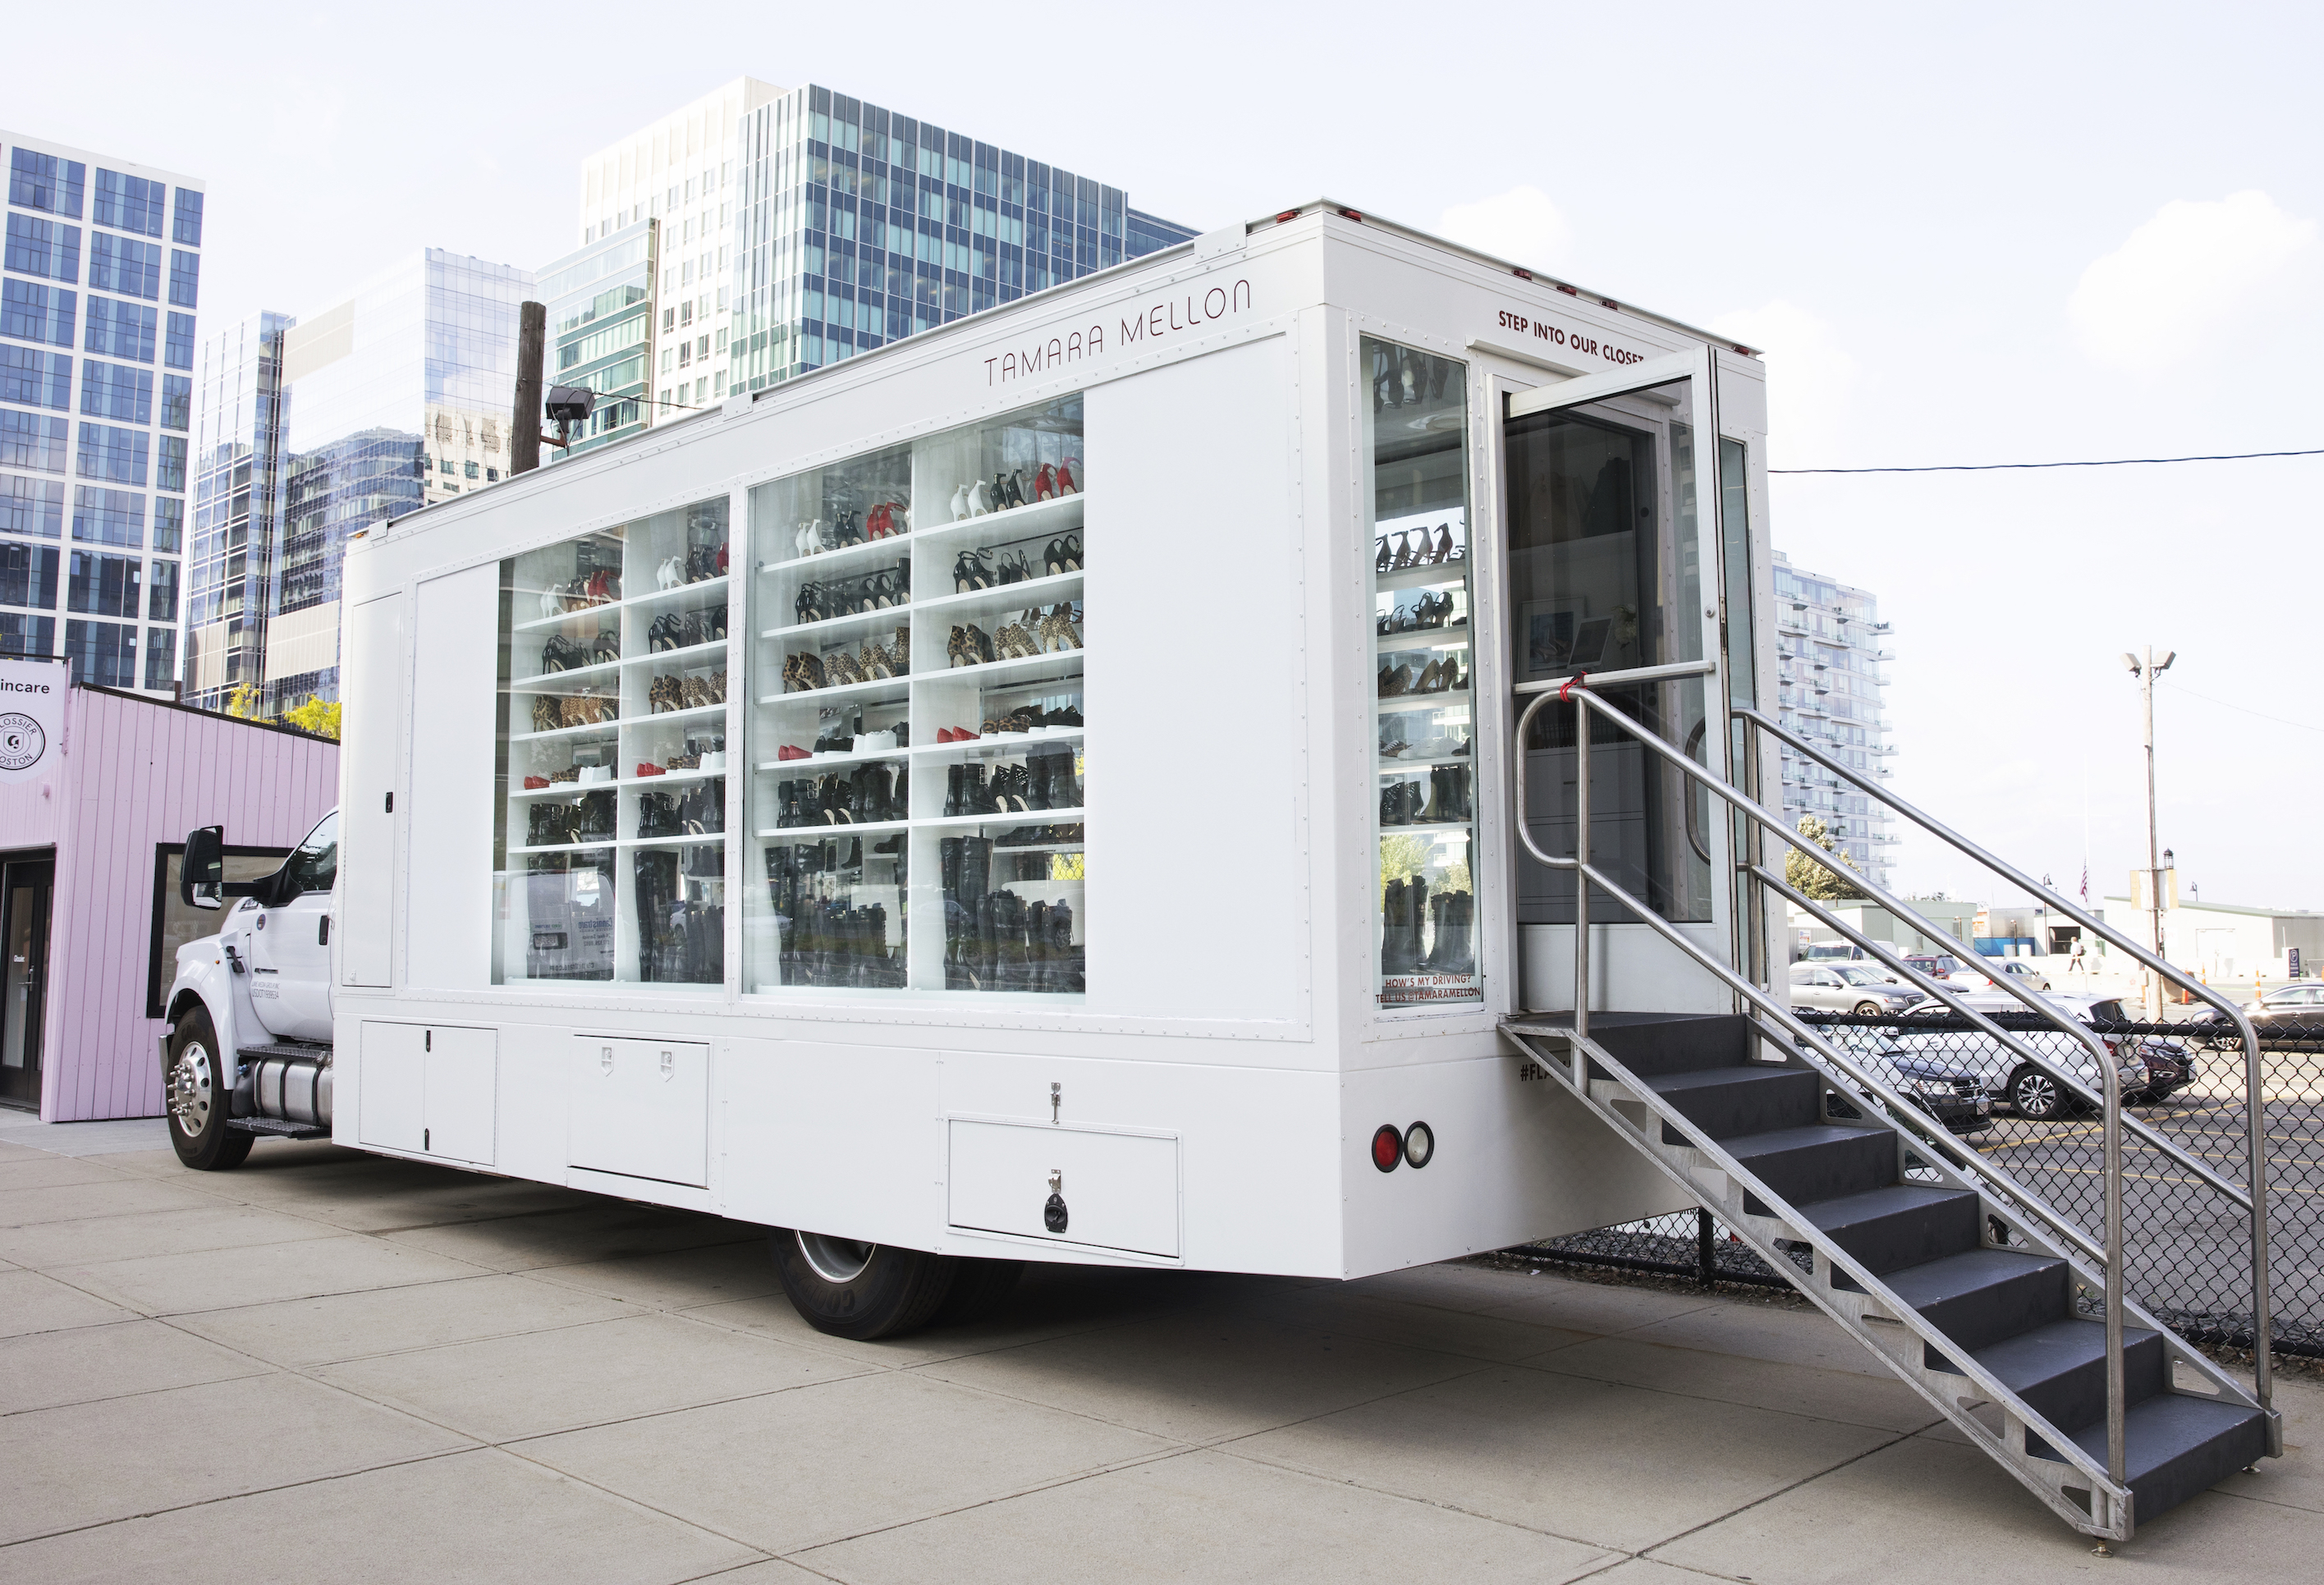 The Tamara Mellon truck shoe salon parked in Boston Seaport, a hub of pop-up stores.